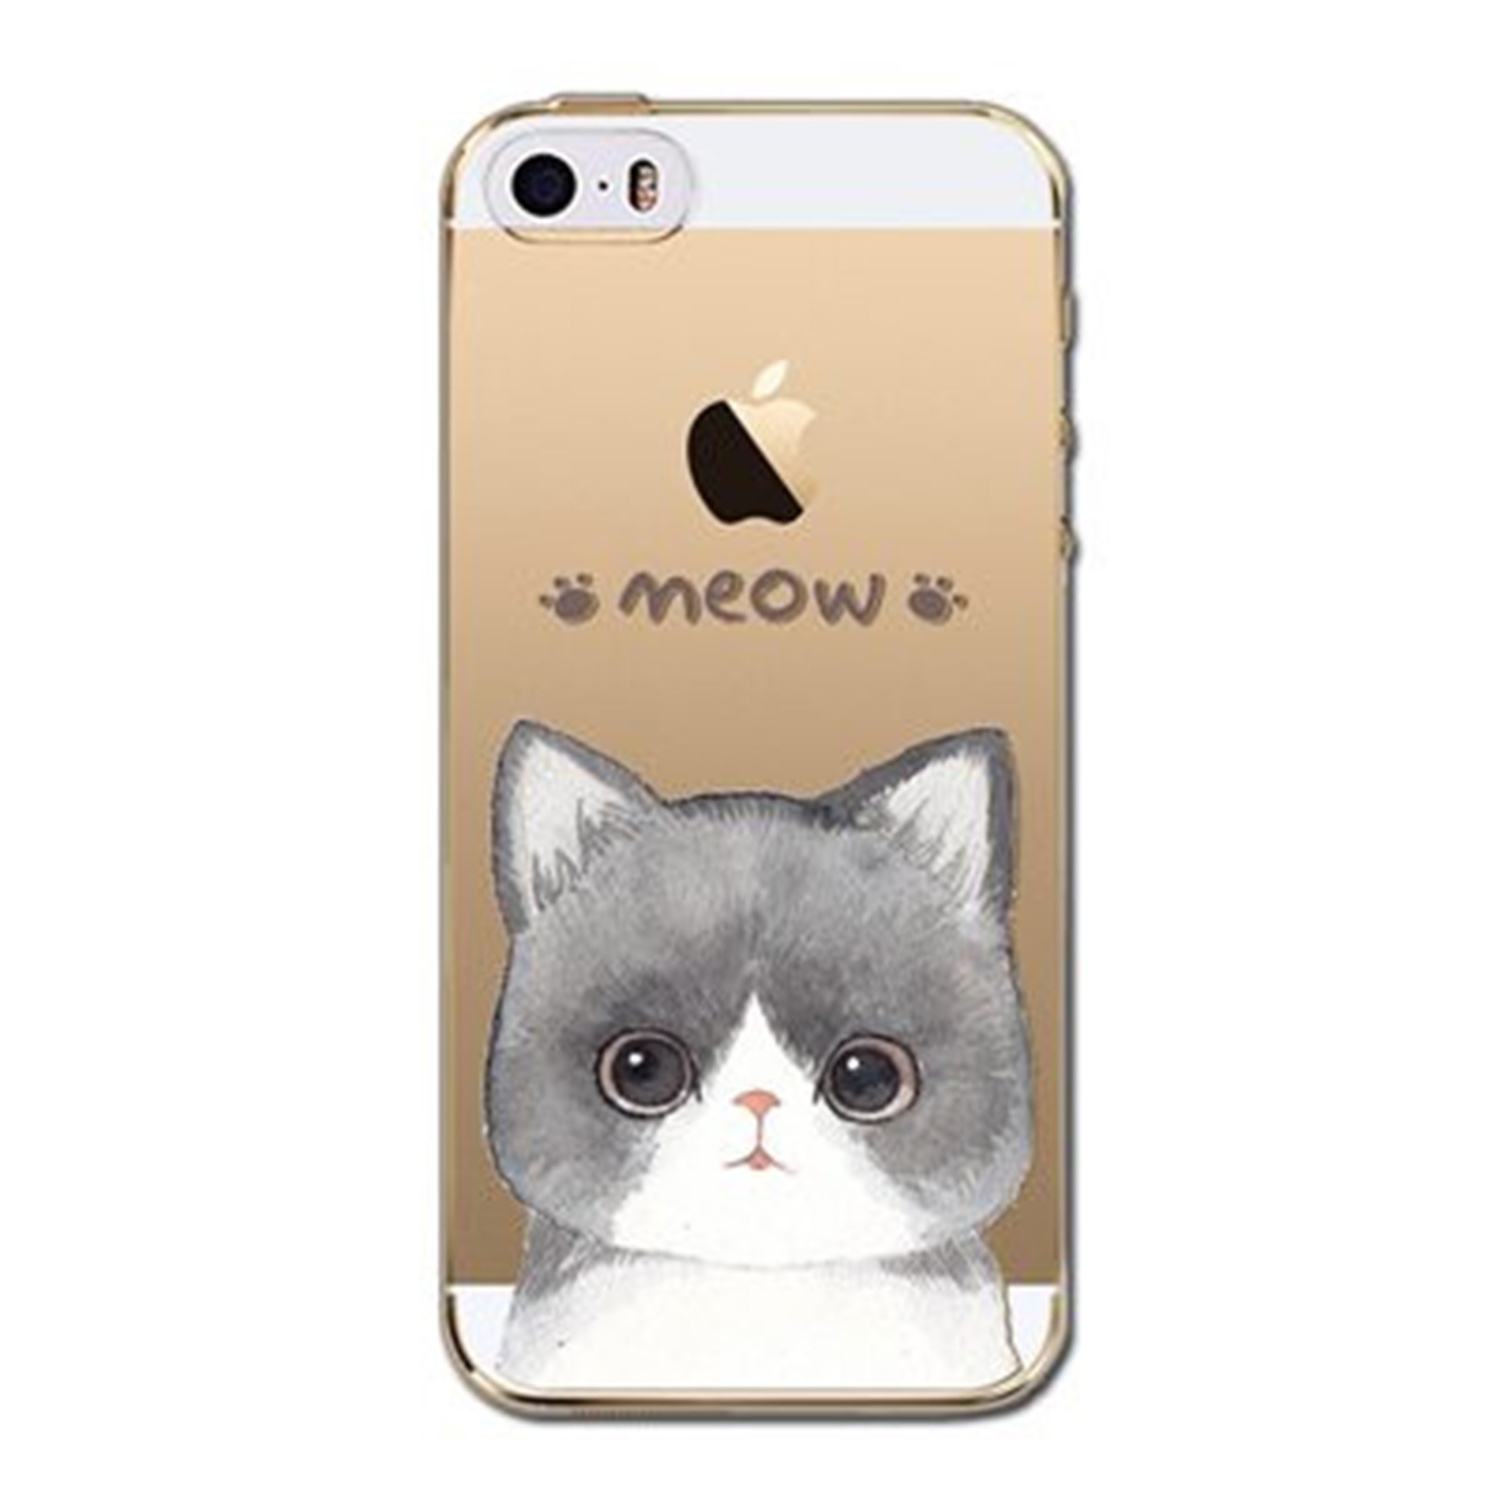 Kritzel Case iPhone 5s / SE - Kitty Collection #400